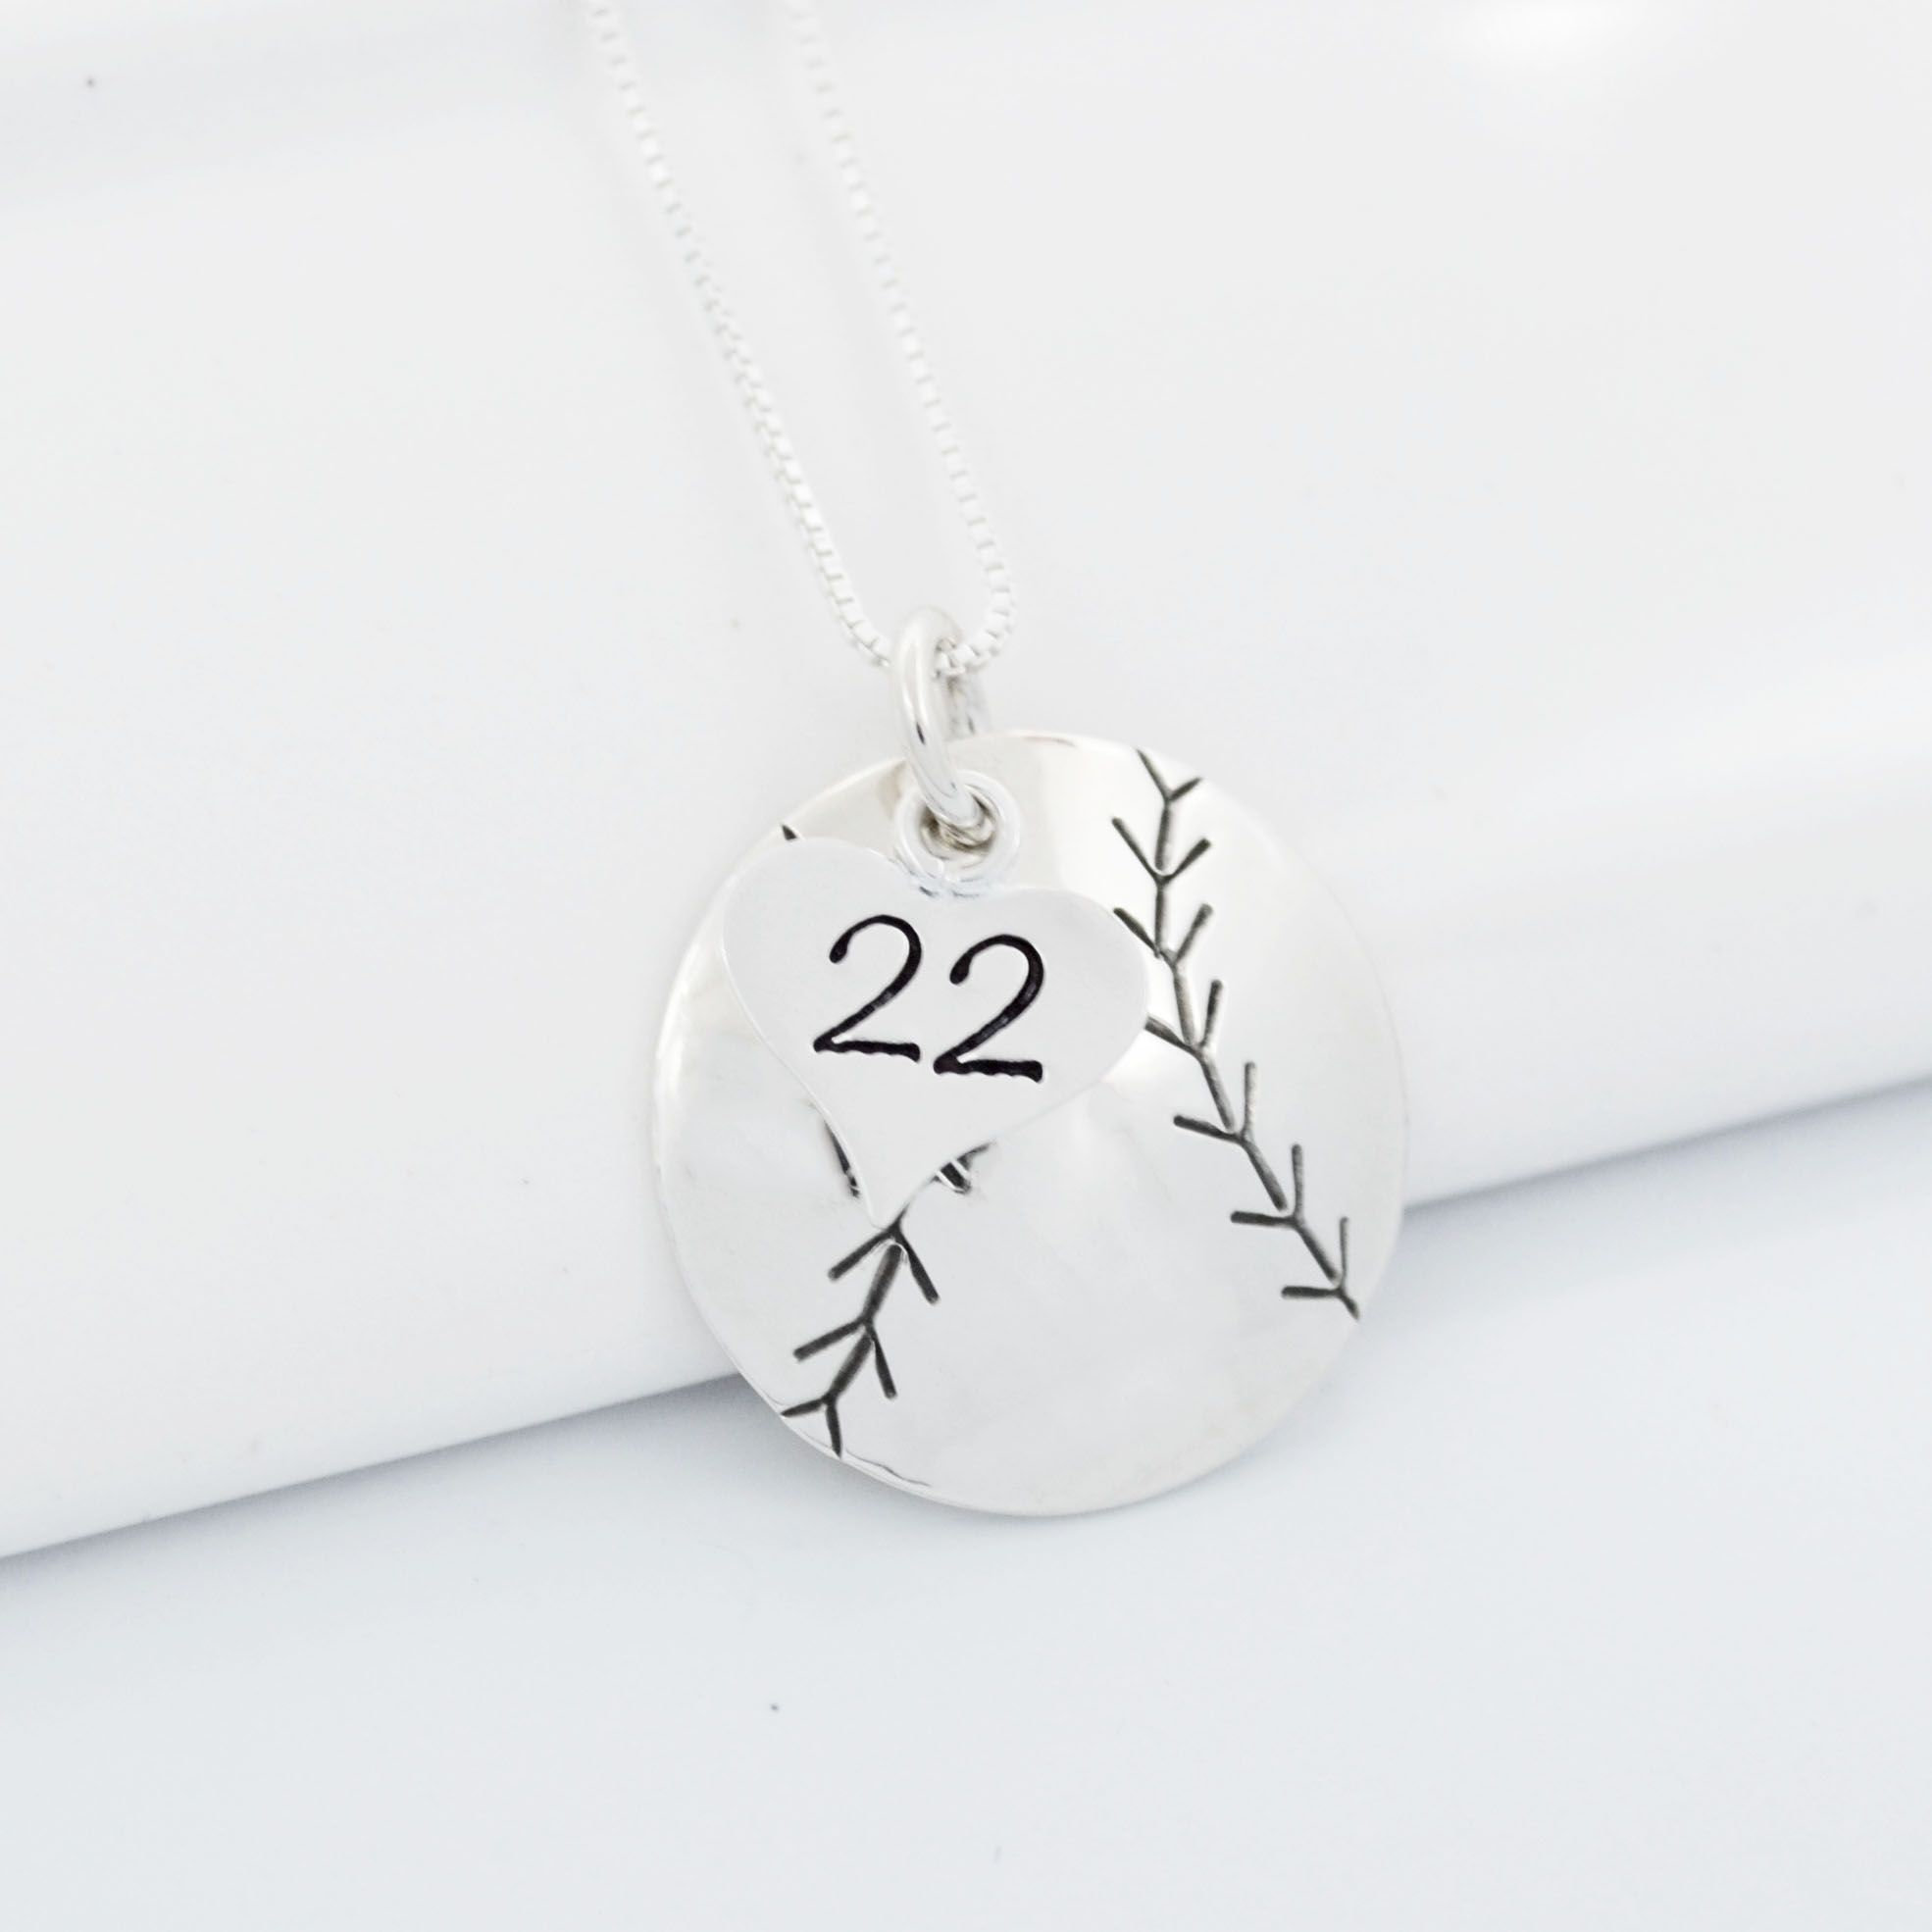 products baseball shineon pendant necklace